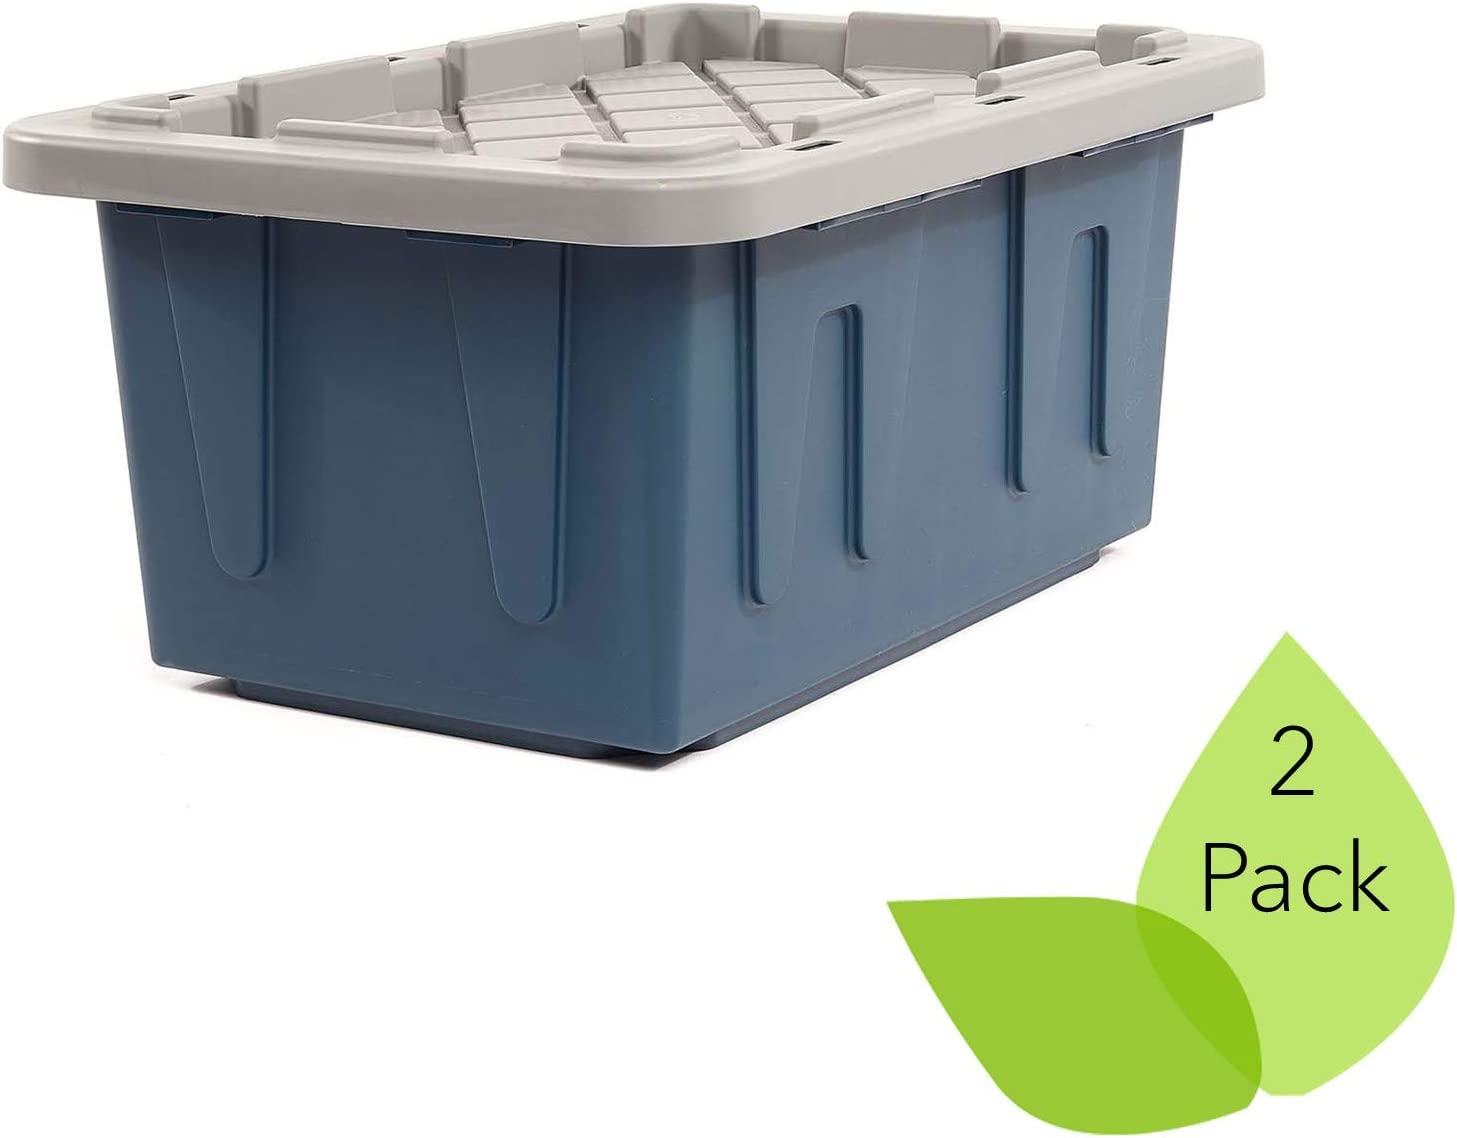 ECOstorage Box Tough Recycled Plastic Storage Container, 15 Gallon, Blue, 2 Pack